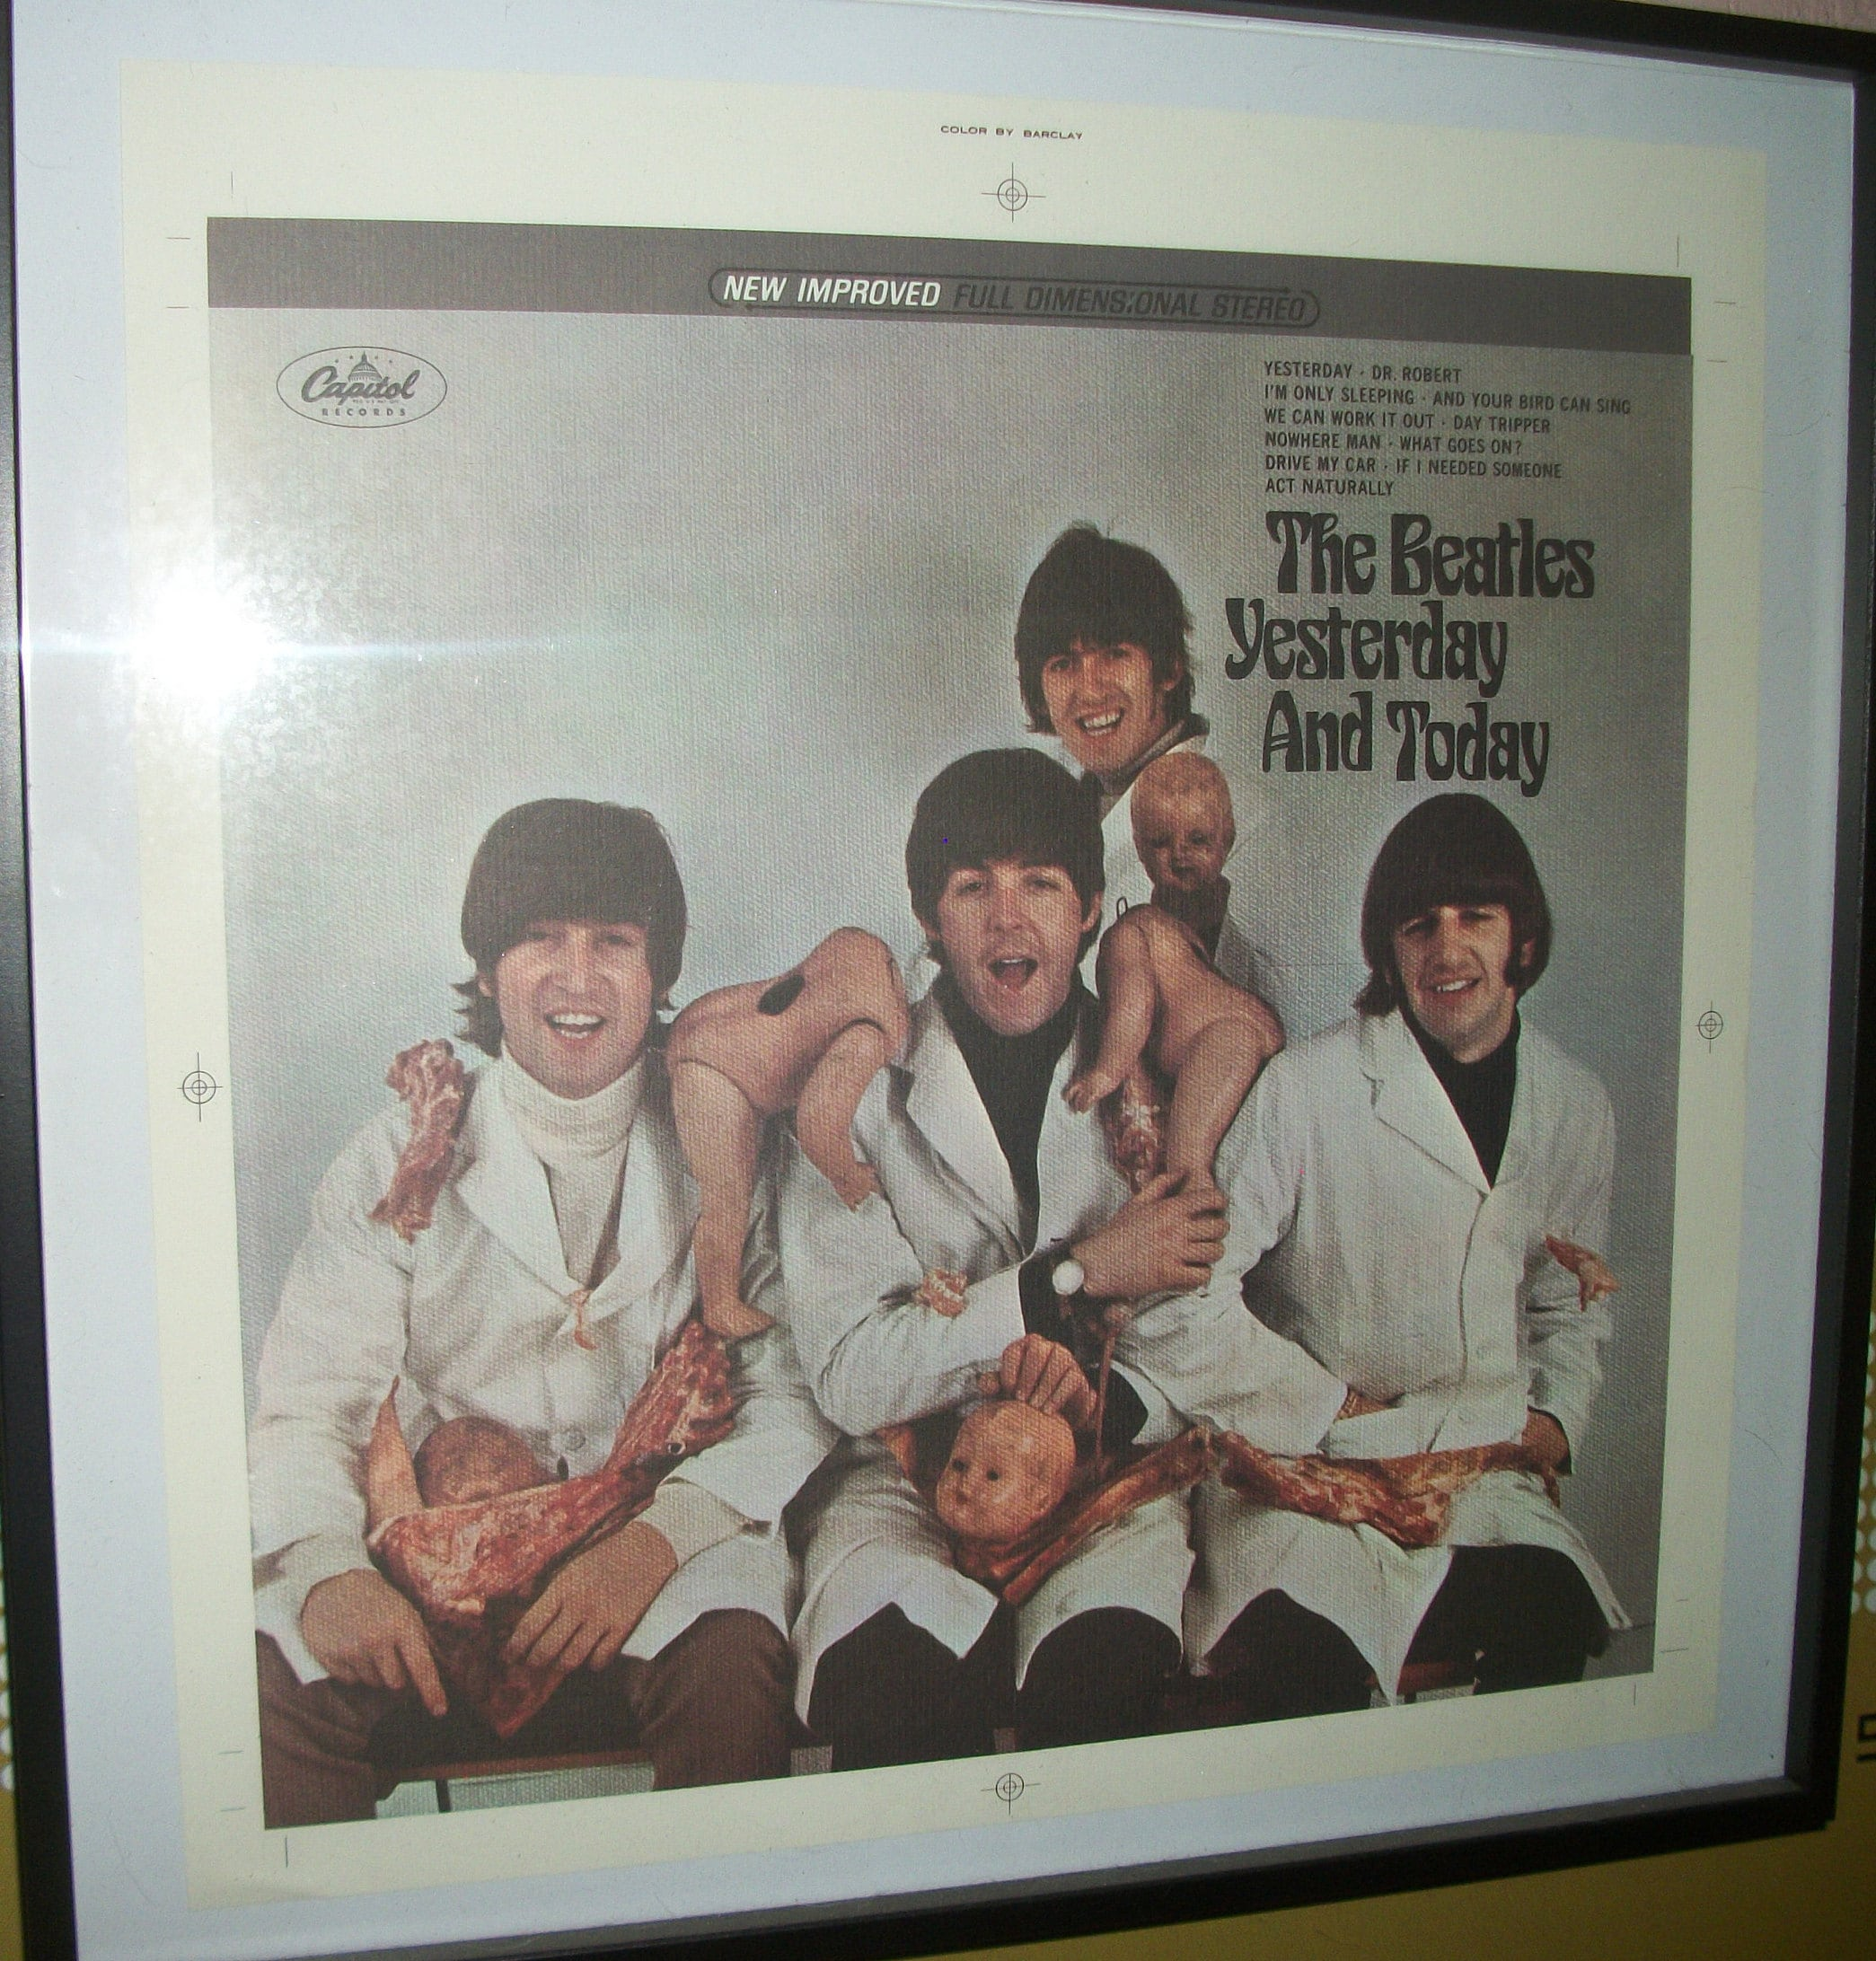 Butcher Cover Letter: The Beatles Yesterday & Today